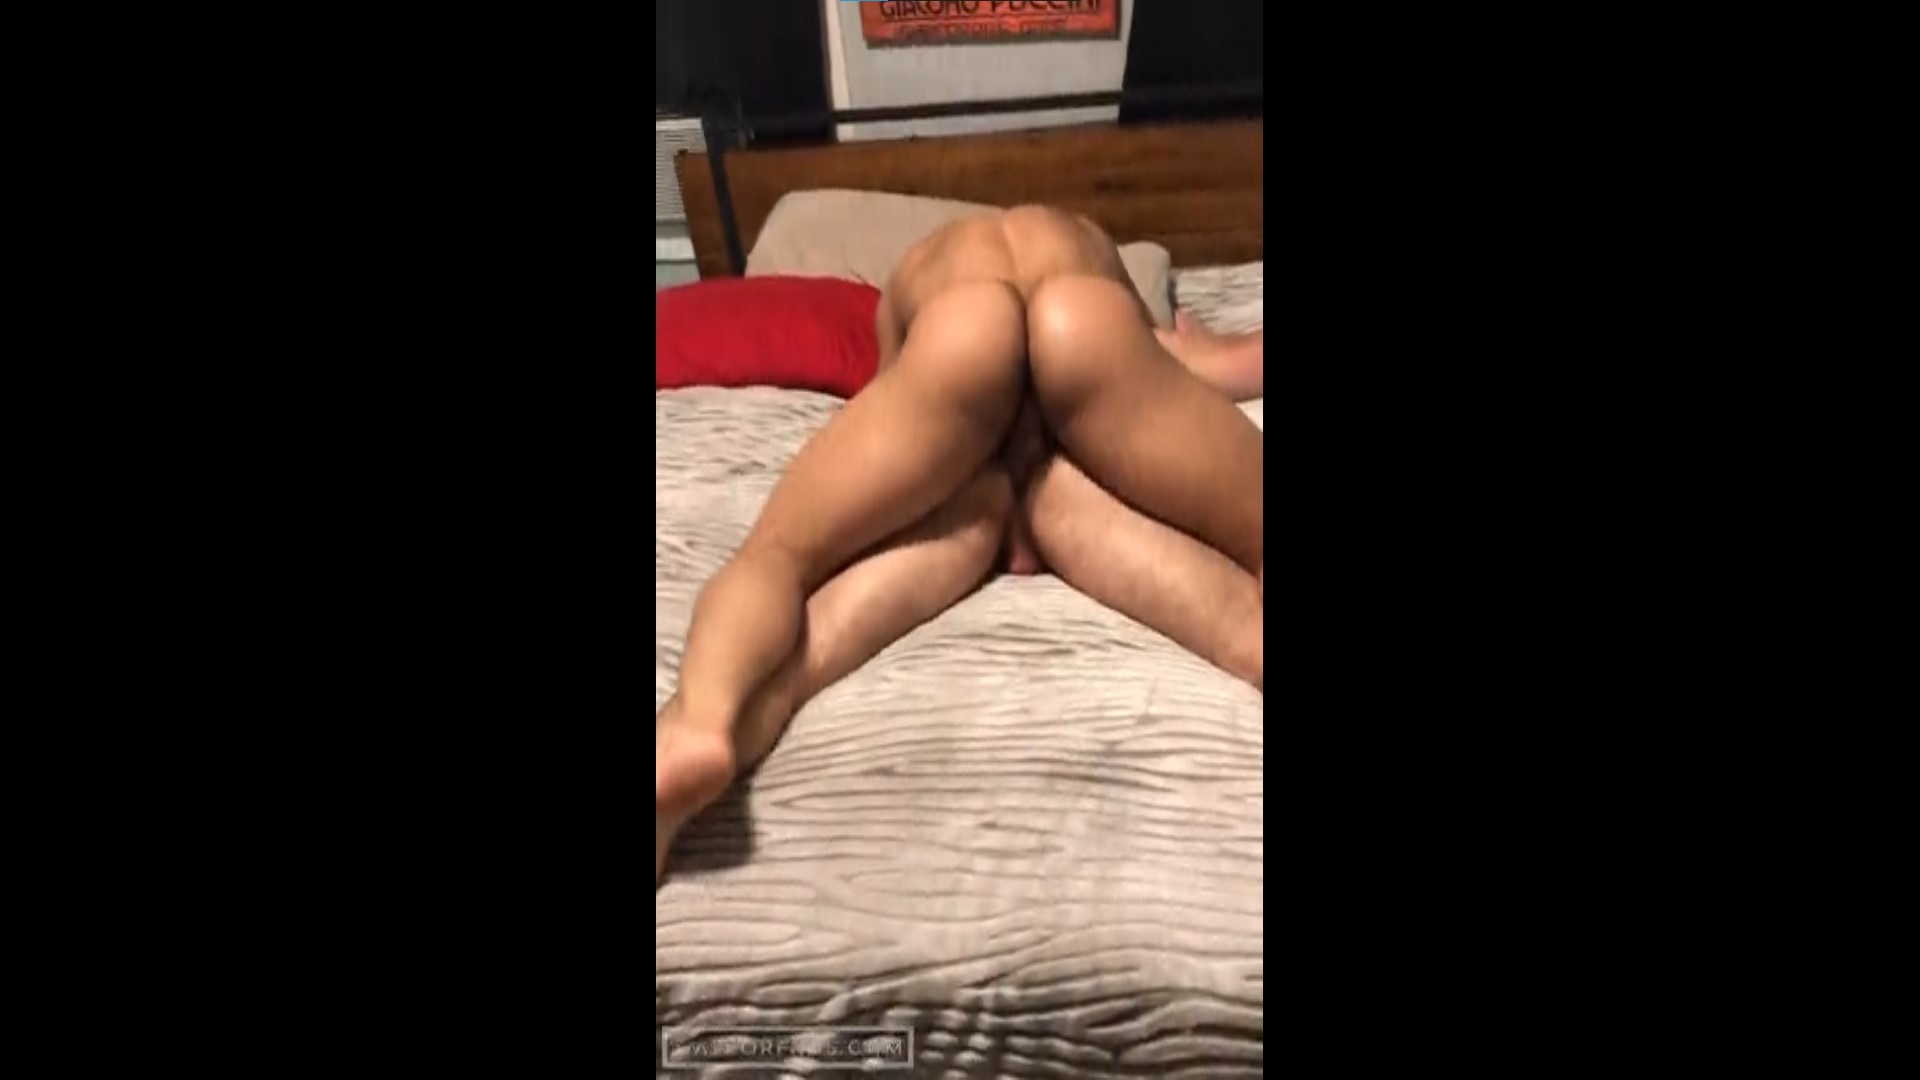 Fucking my boyfriend while another guy watches - HottieHubbies